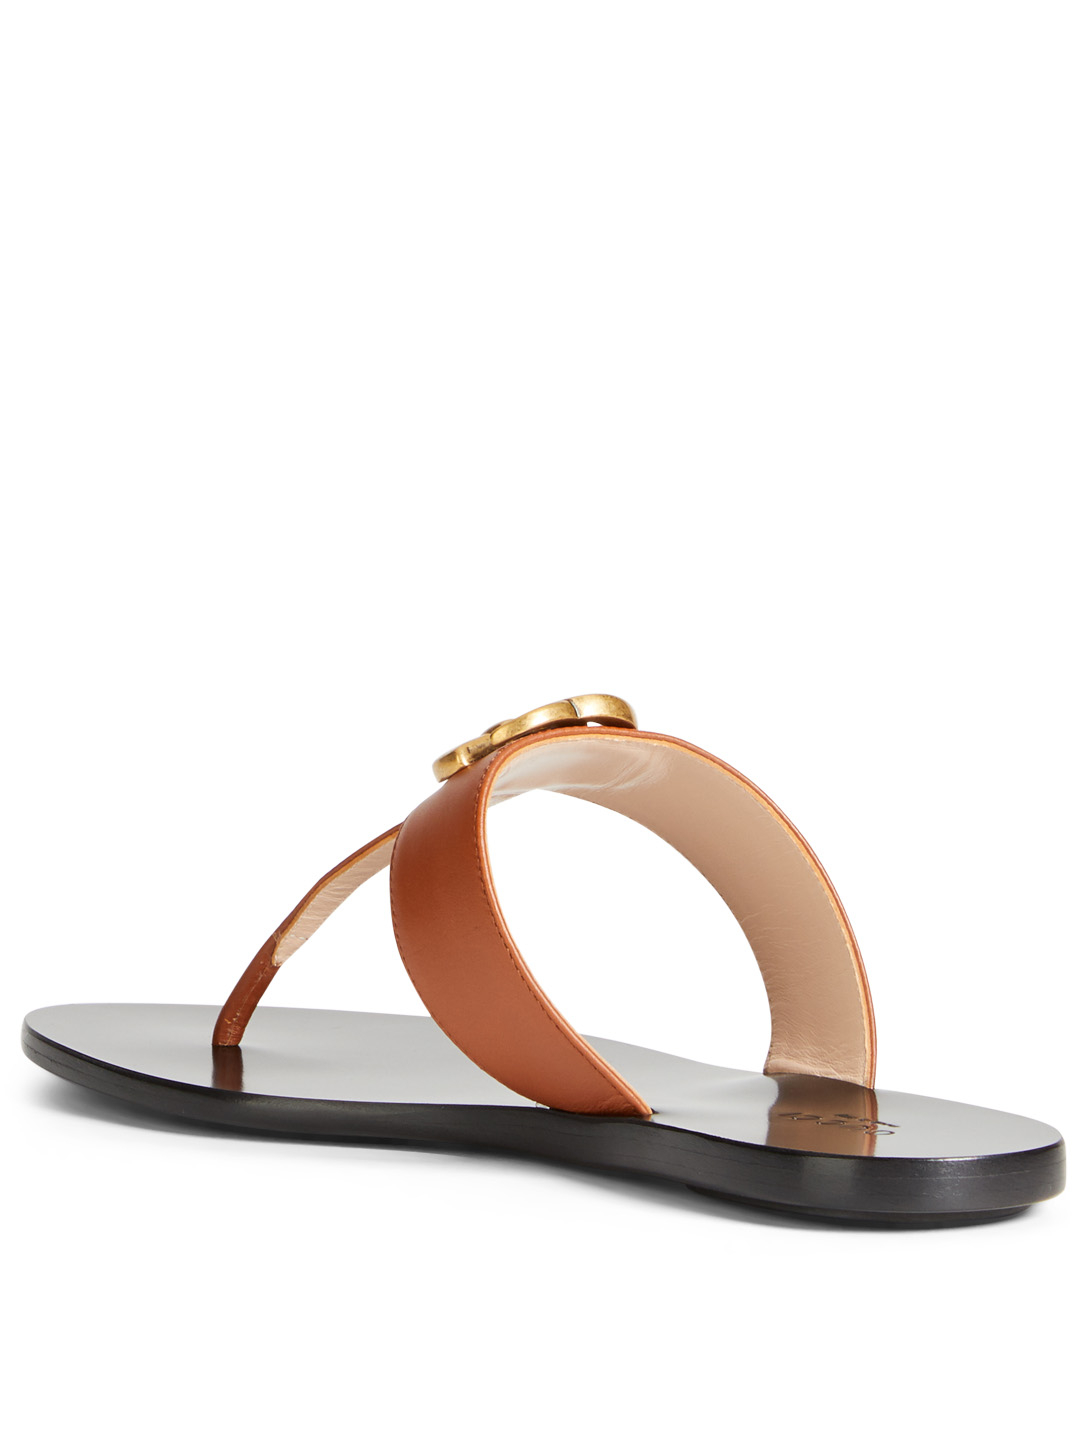 GUCCI Marmont Leather Thong Sandals Women's Brown